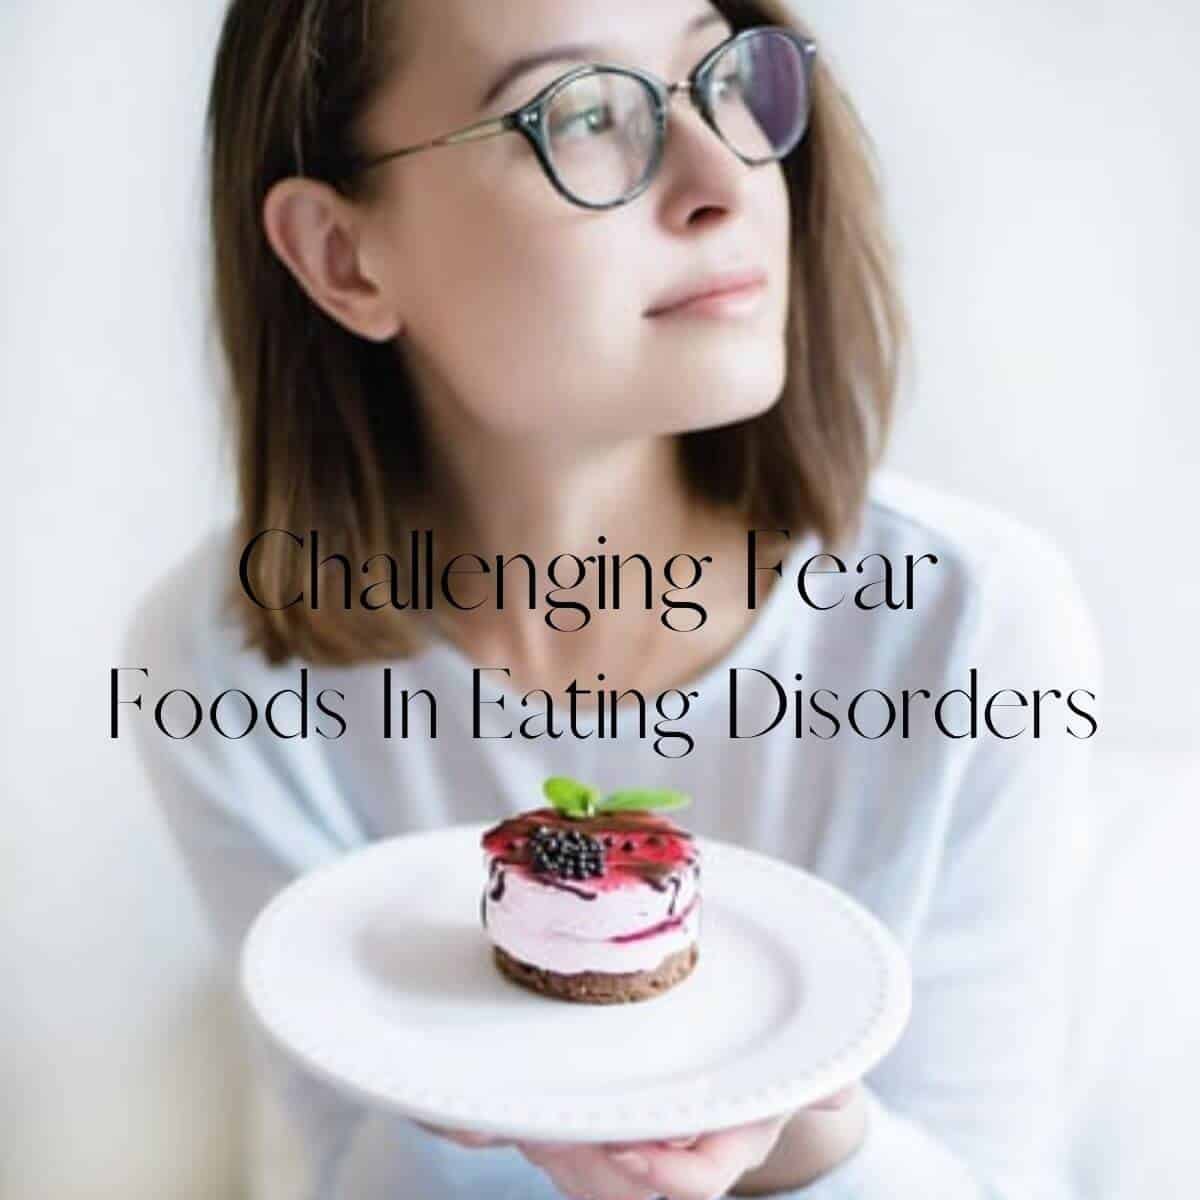 Challenging Fear Foods In Eating Disorder Recovery